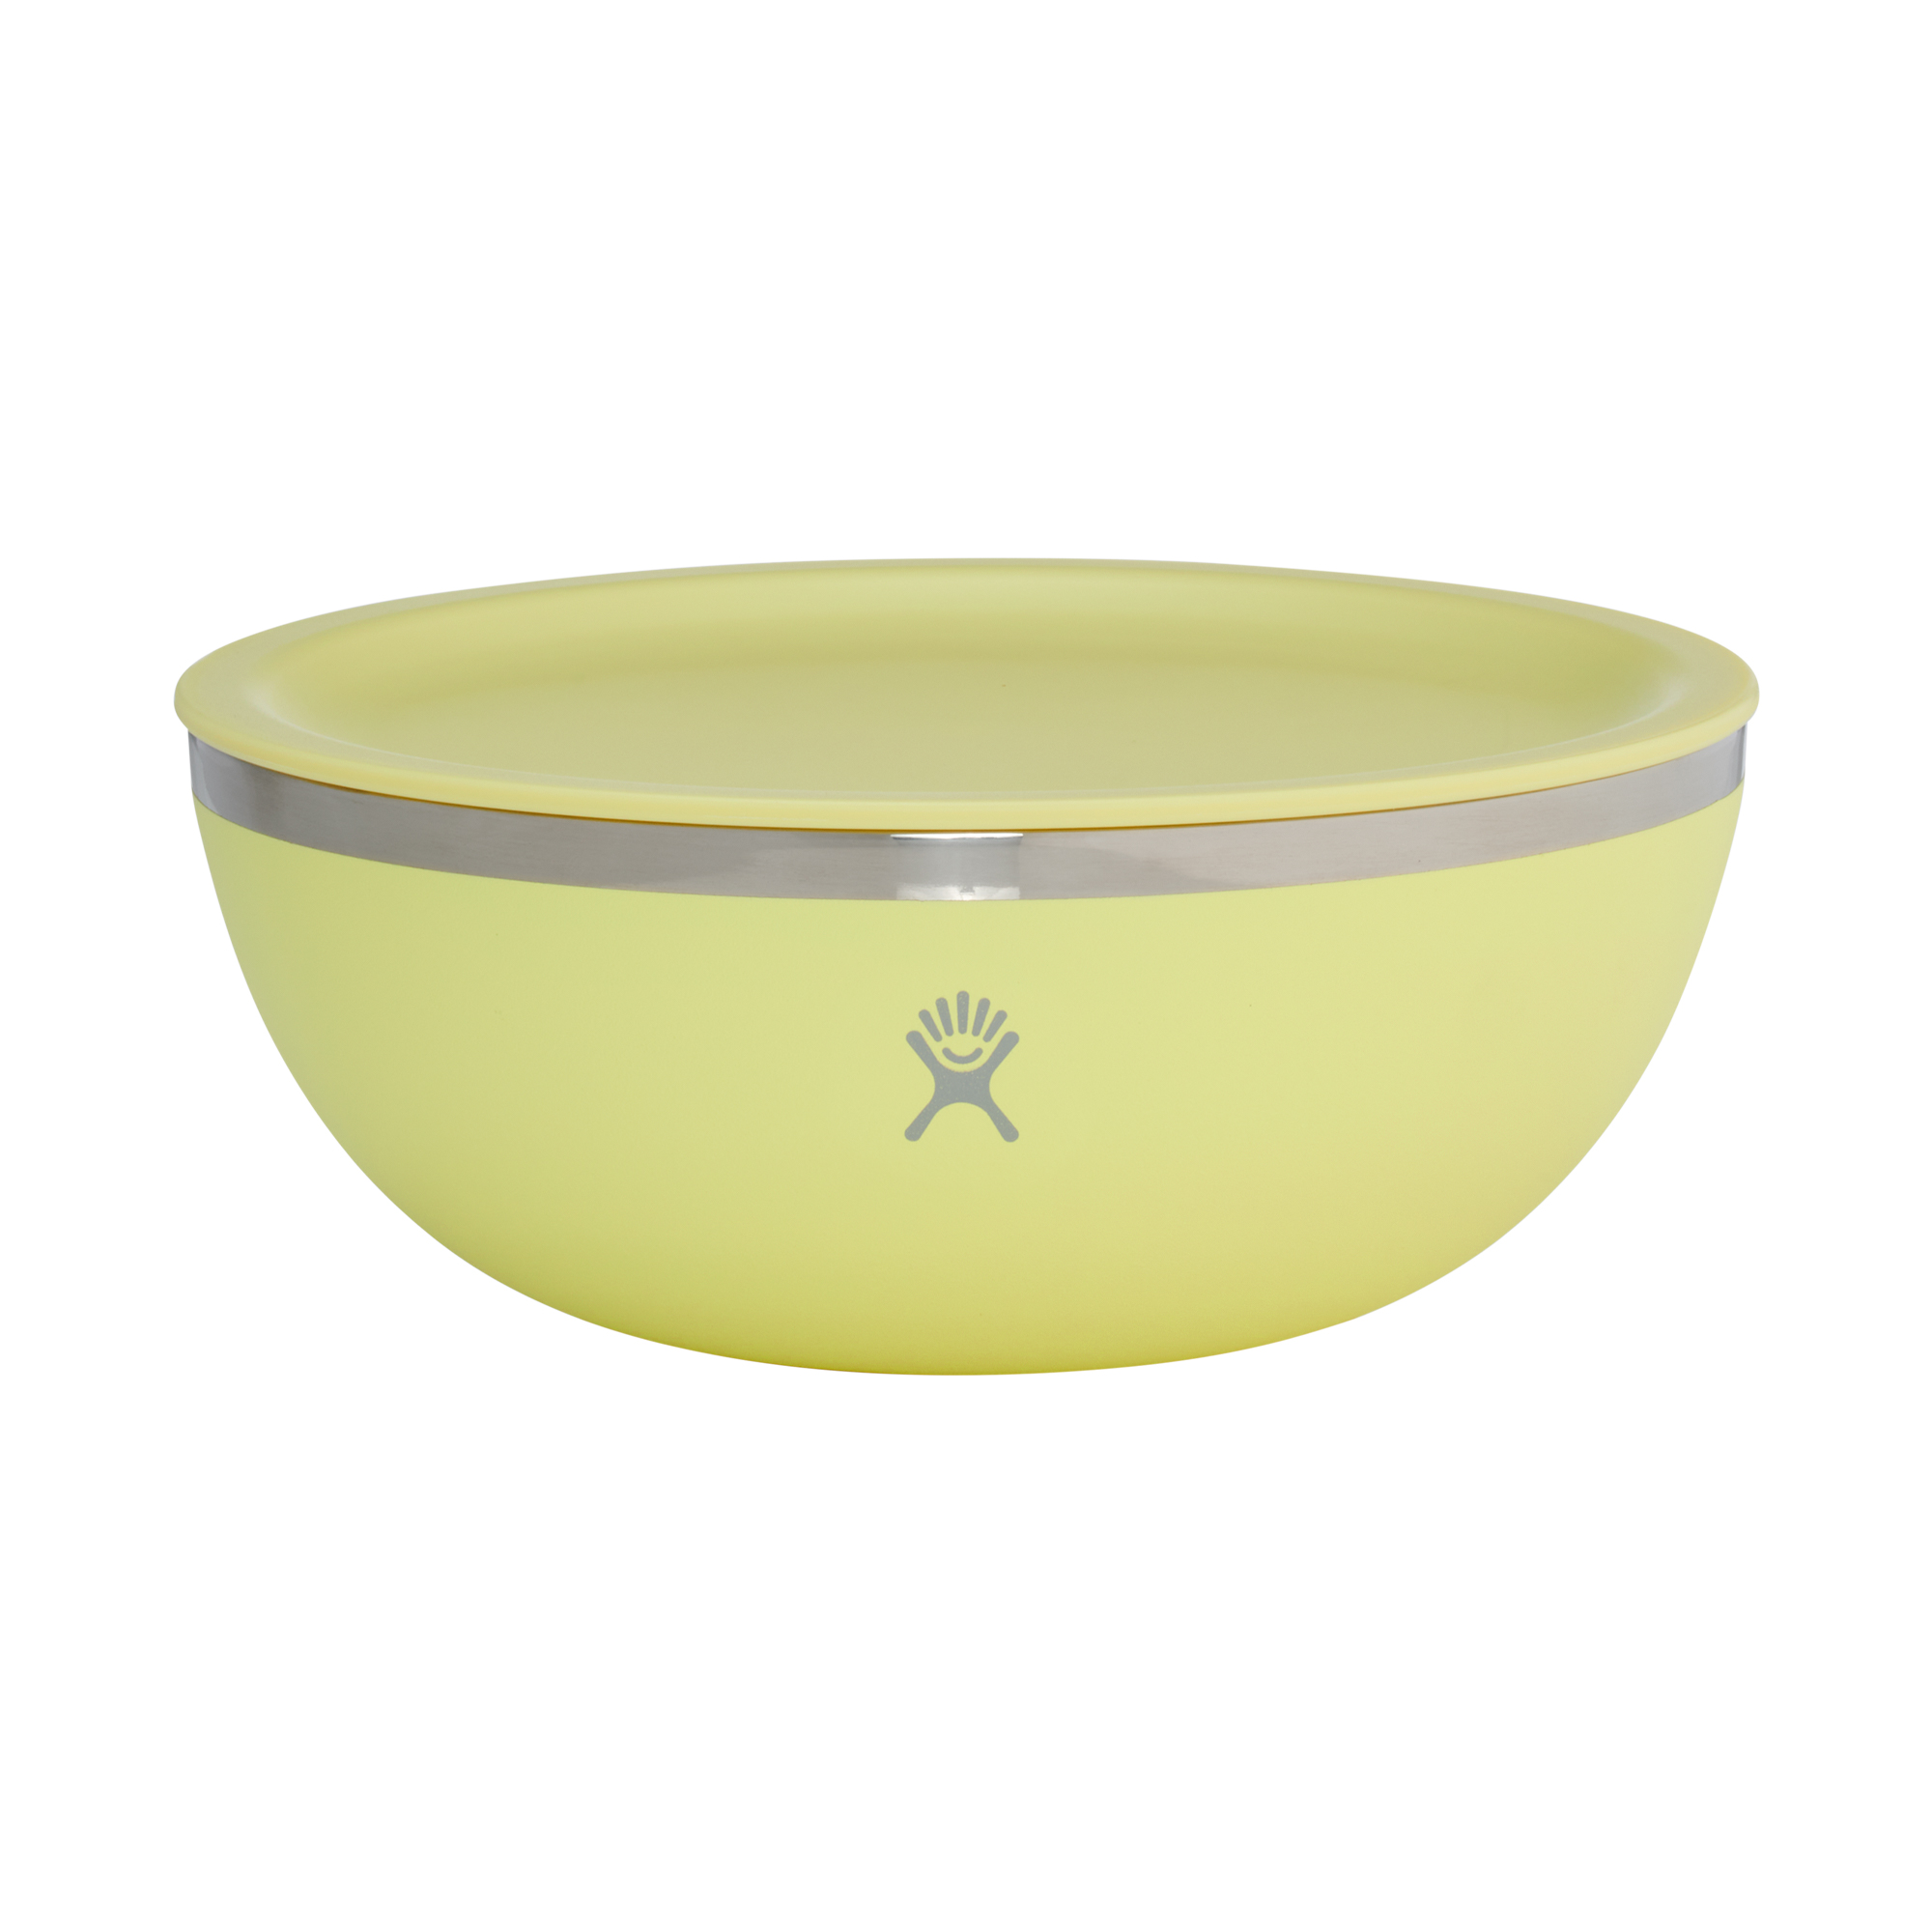 Hydro Flask 1 Quart Bowl with Lid